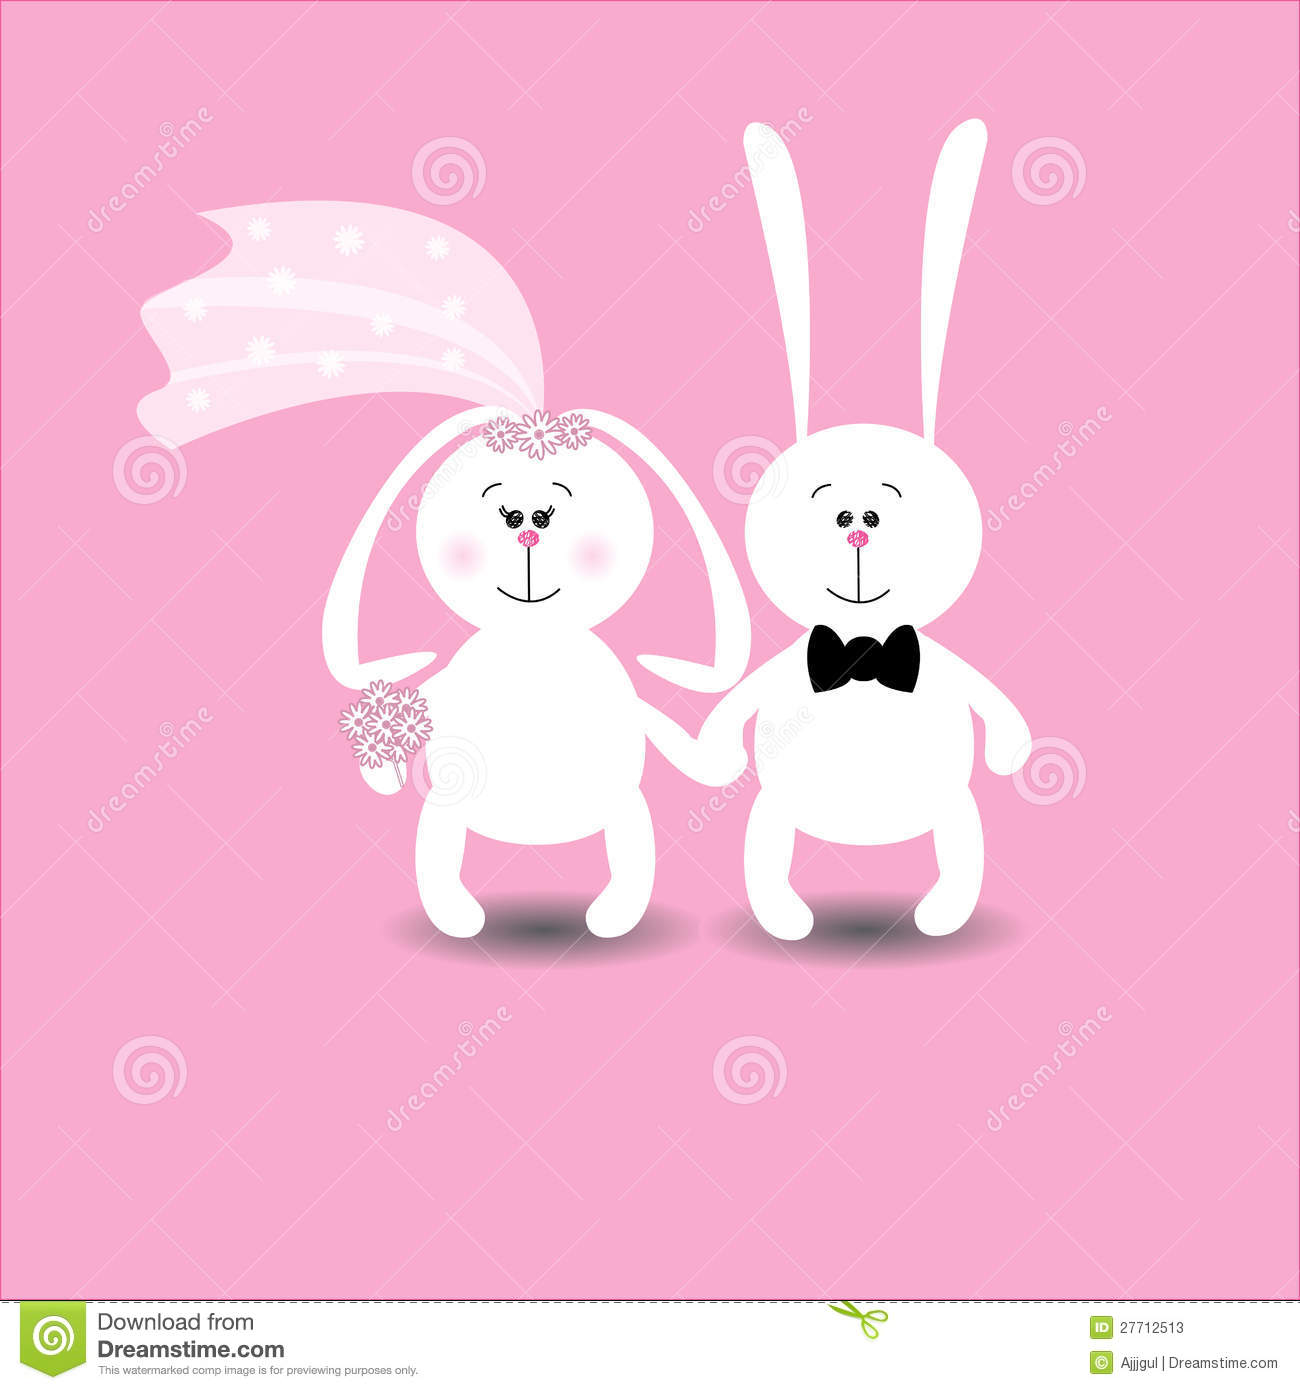 Best Wedding Ring Funny Wedding Rings : Cute Wedding Card With Rabbits  In Love